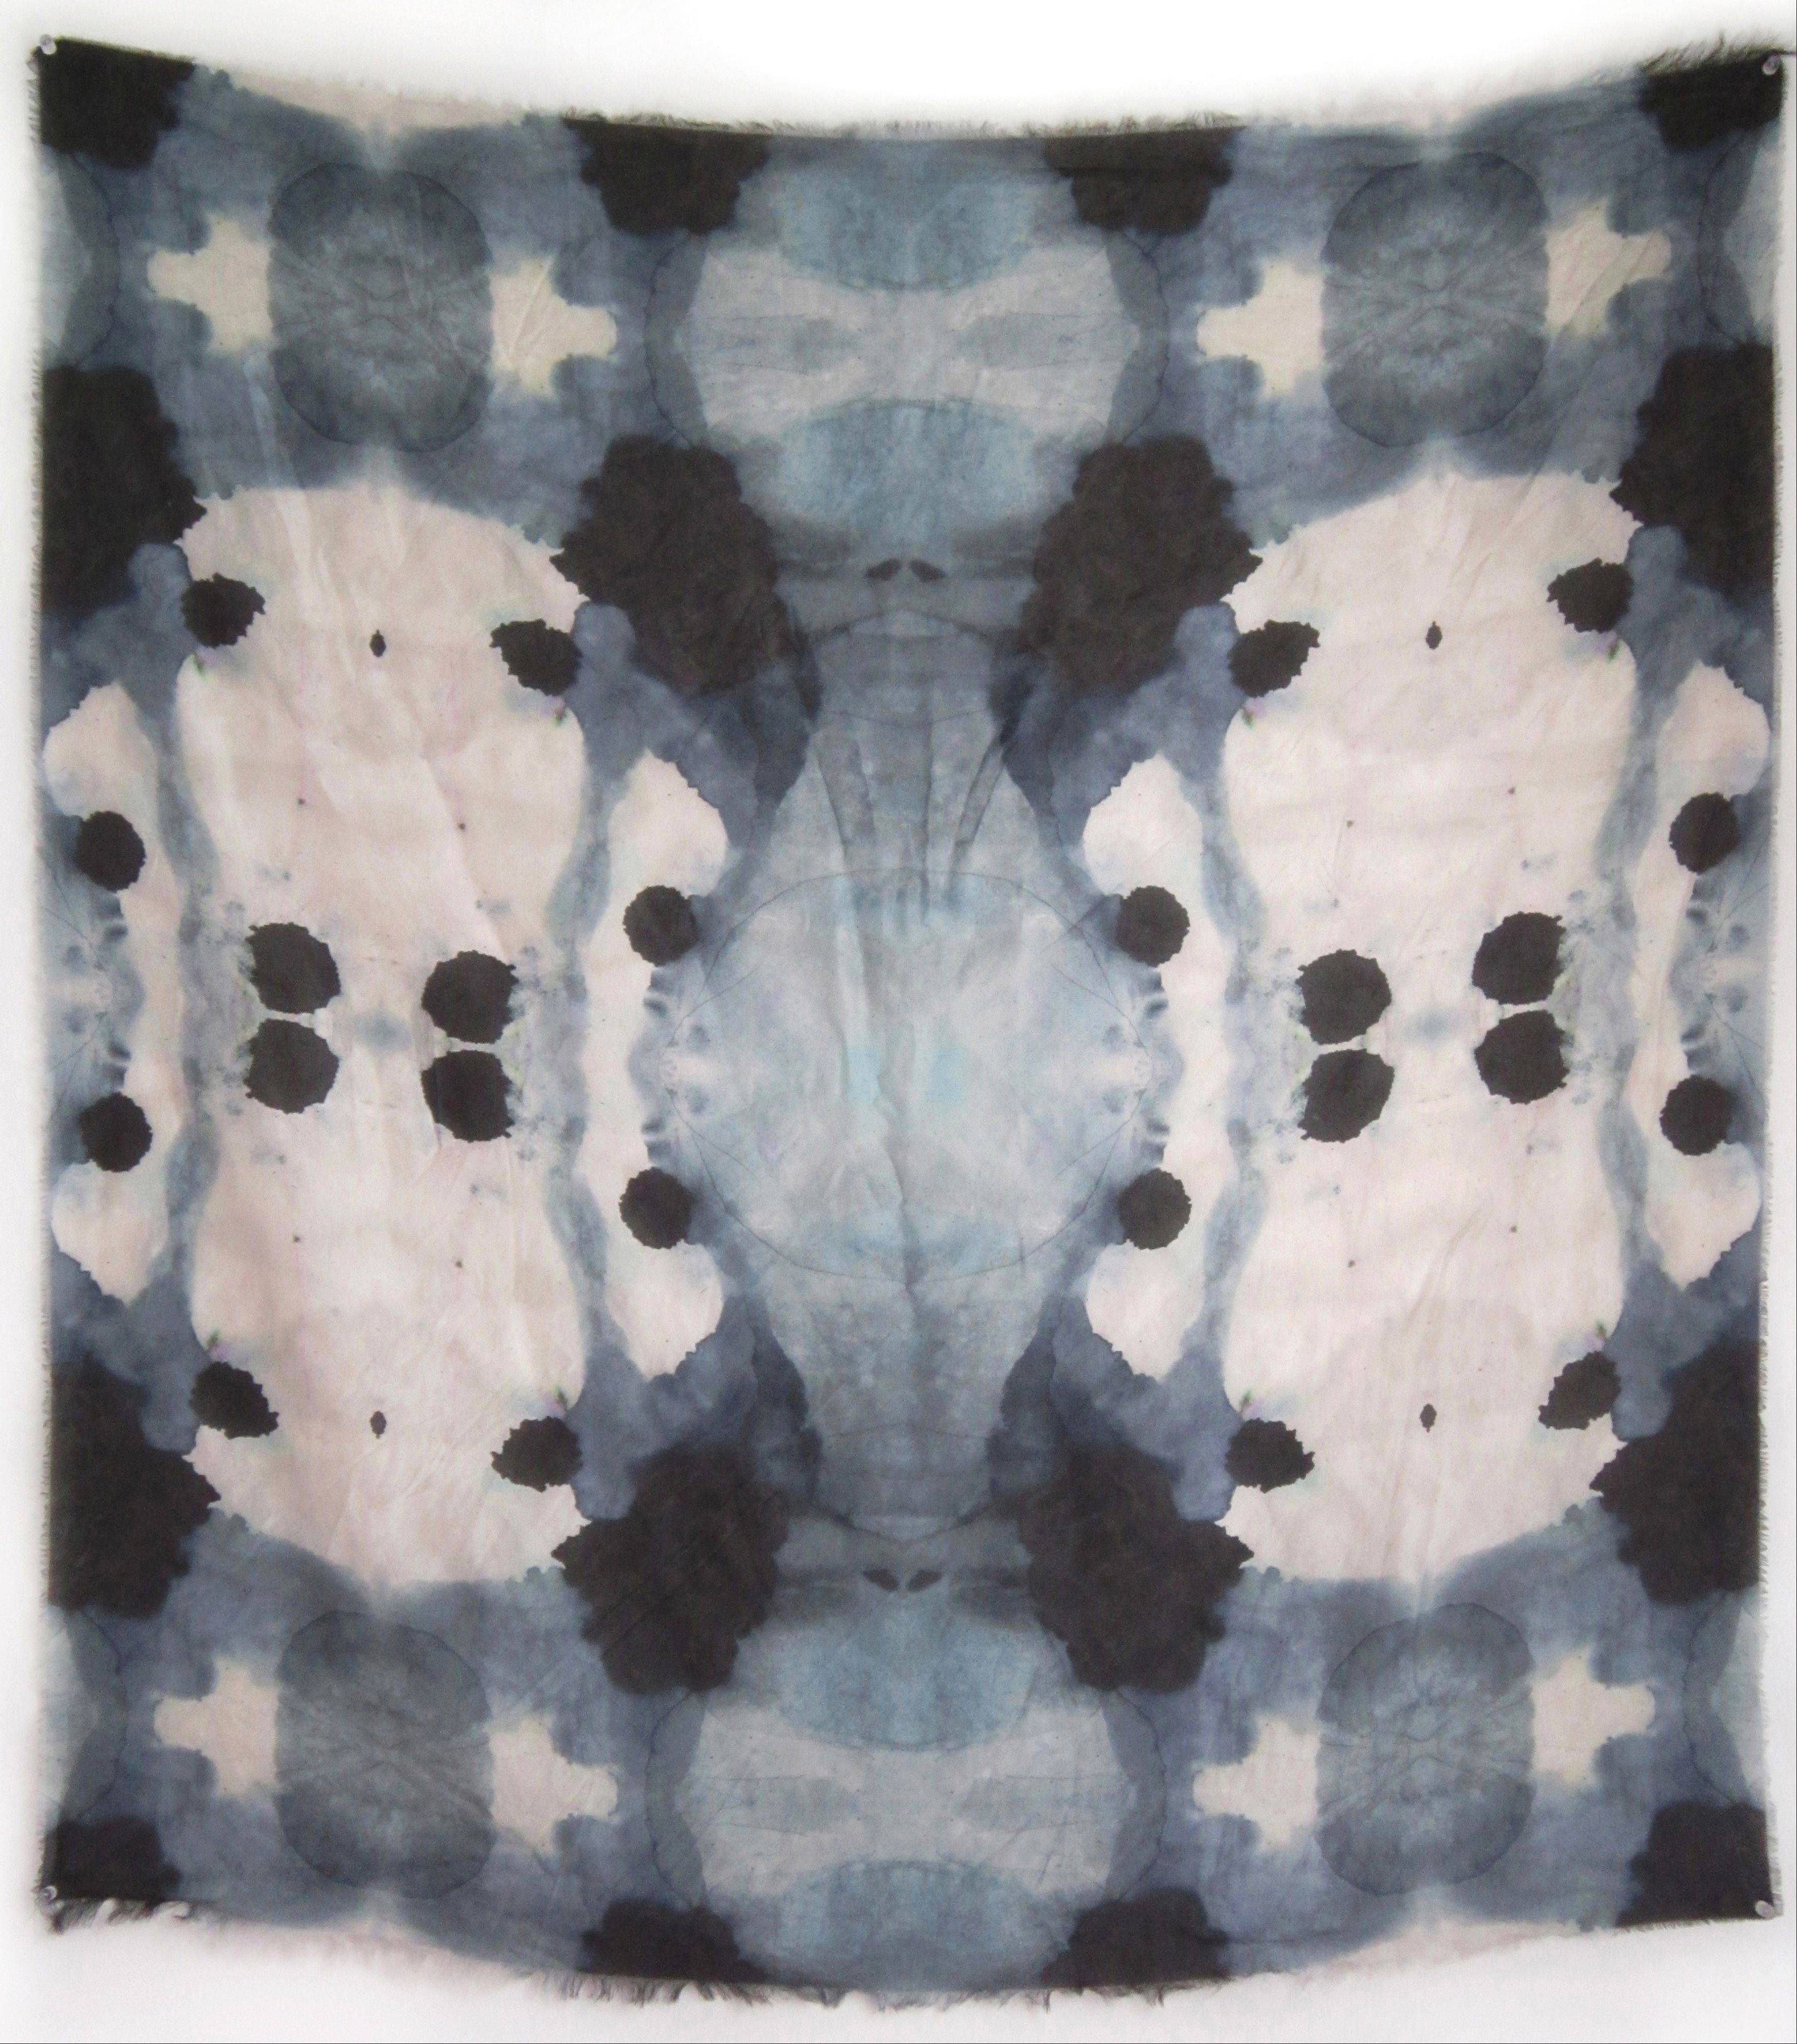 A shibori scarf produced by Eskayel, a design firm based in New York. The home-design purveyor is creating the look of shibori patterns using ink, water and watercolors, followed by digital printing techniques.